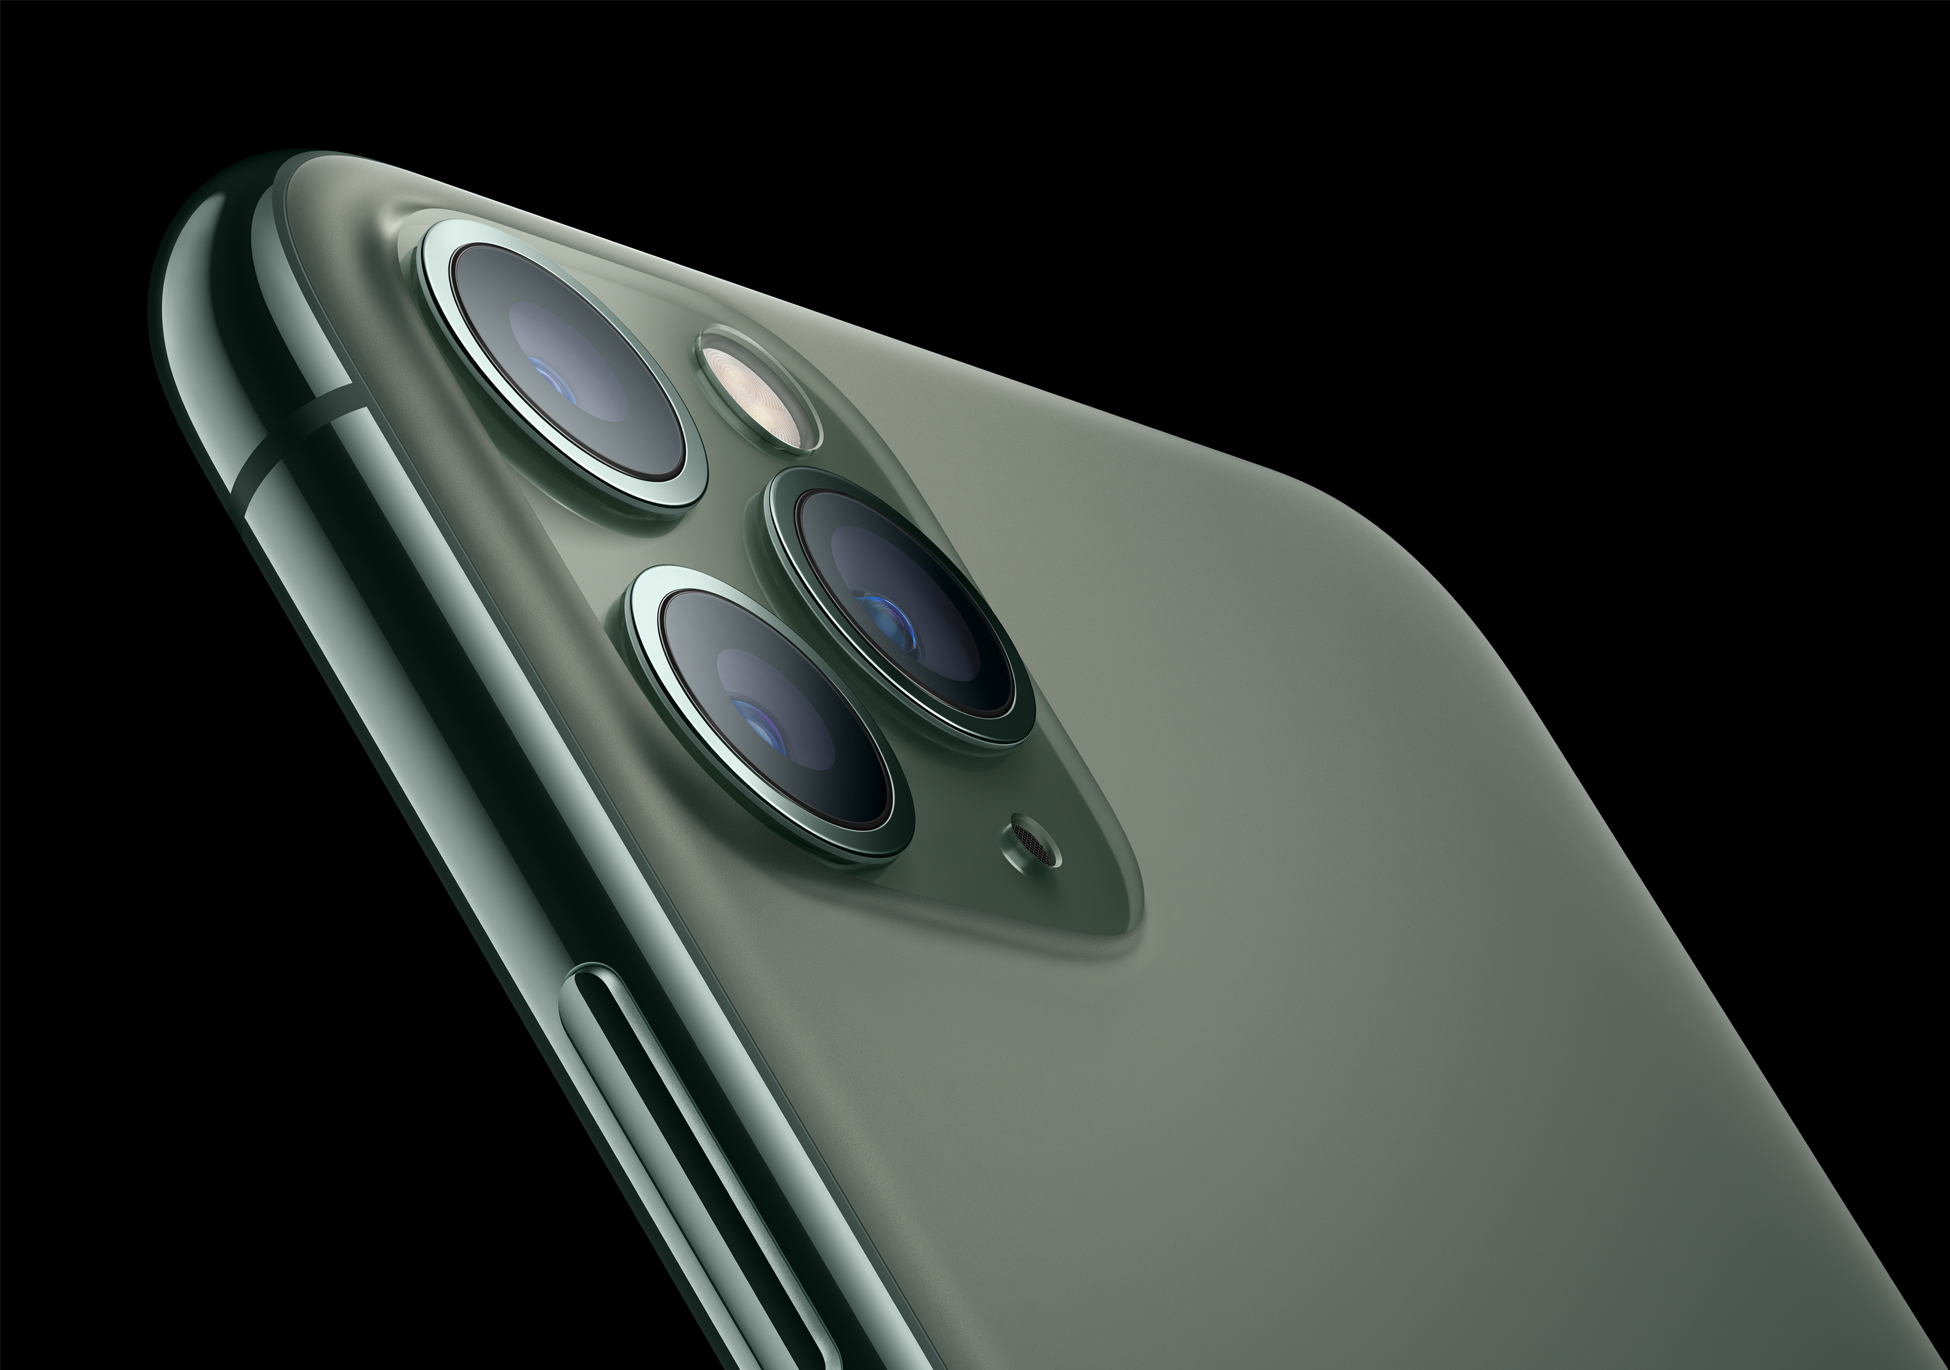 The Ultra Wide Camera In The Iphone 11 Models Is Fixed Focus